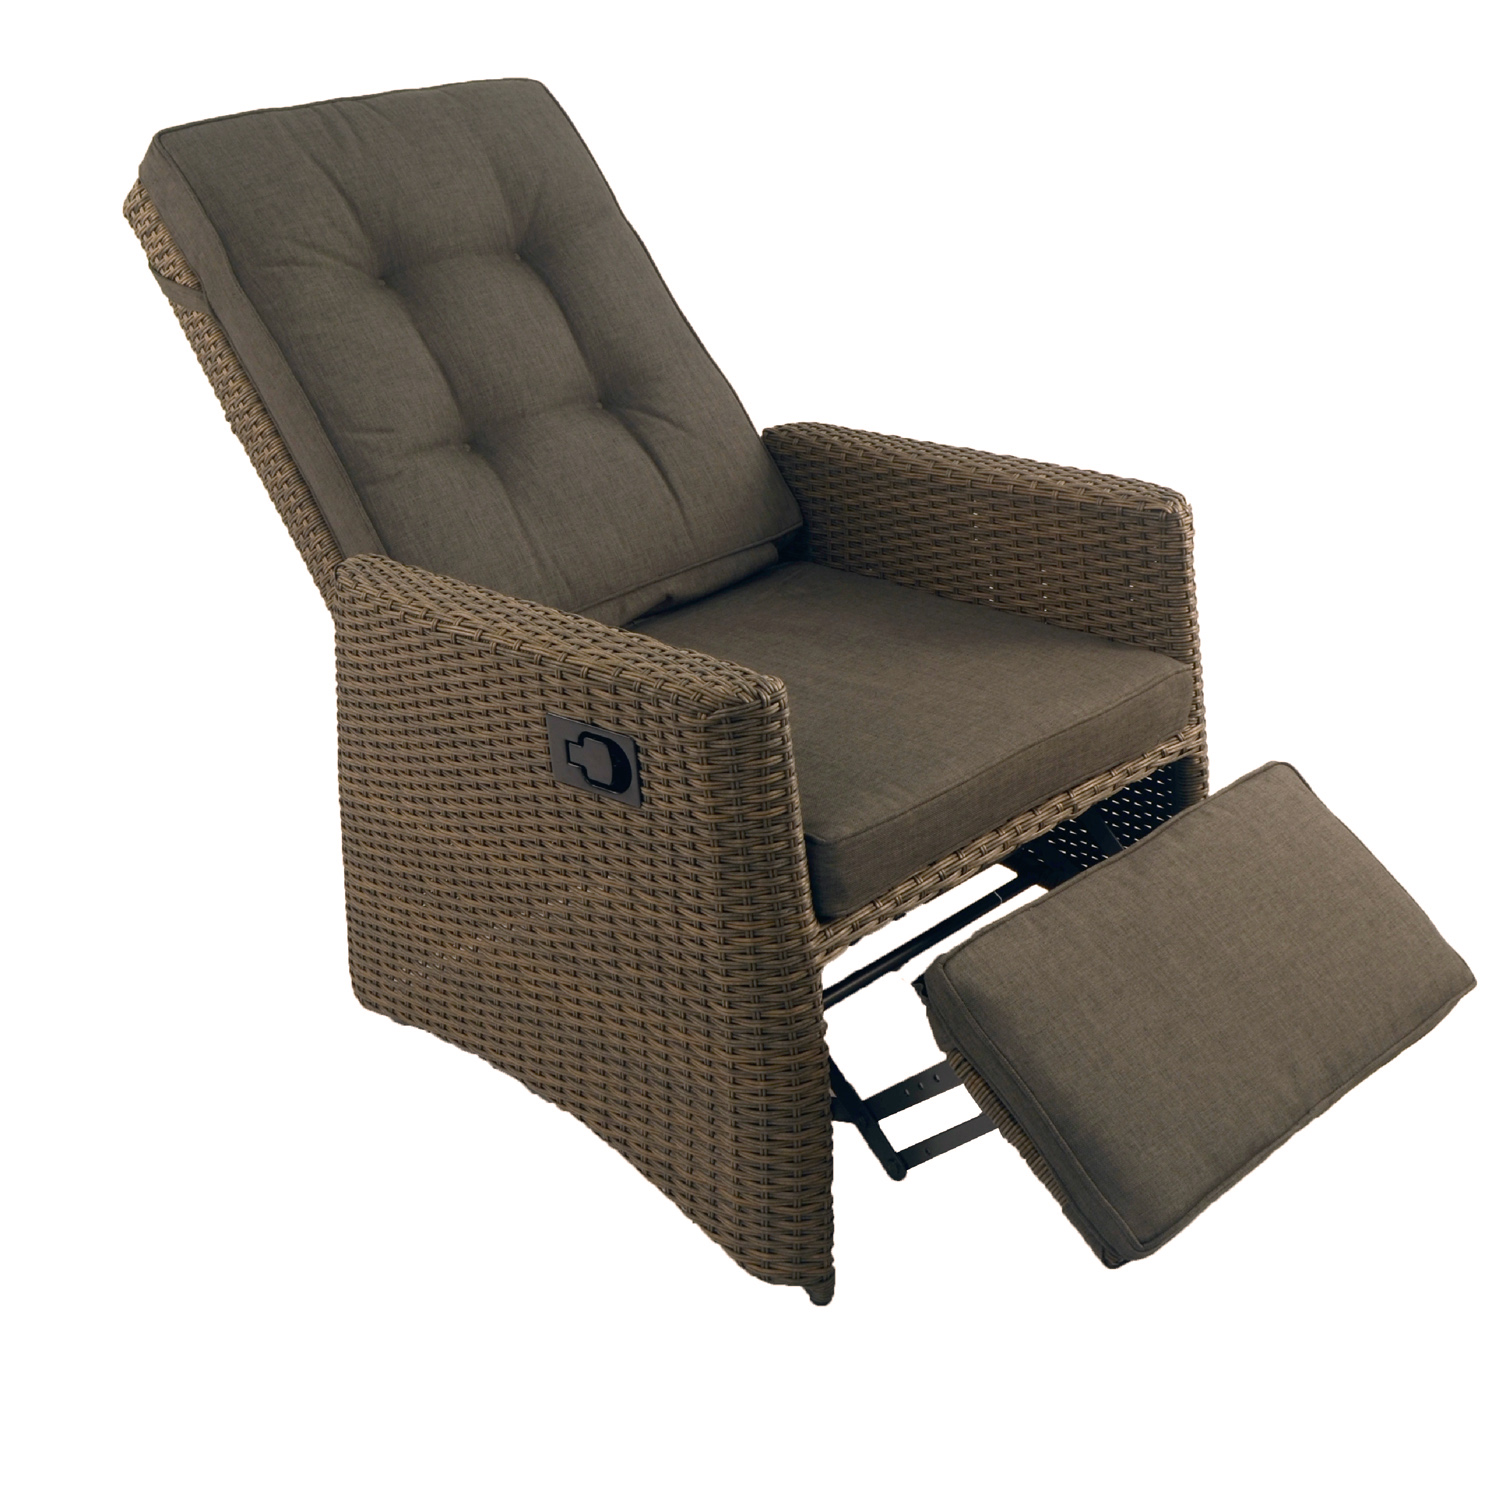 garden perfect cushions inside cushion outdoor with navy filling chair recliner luxury premium